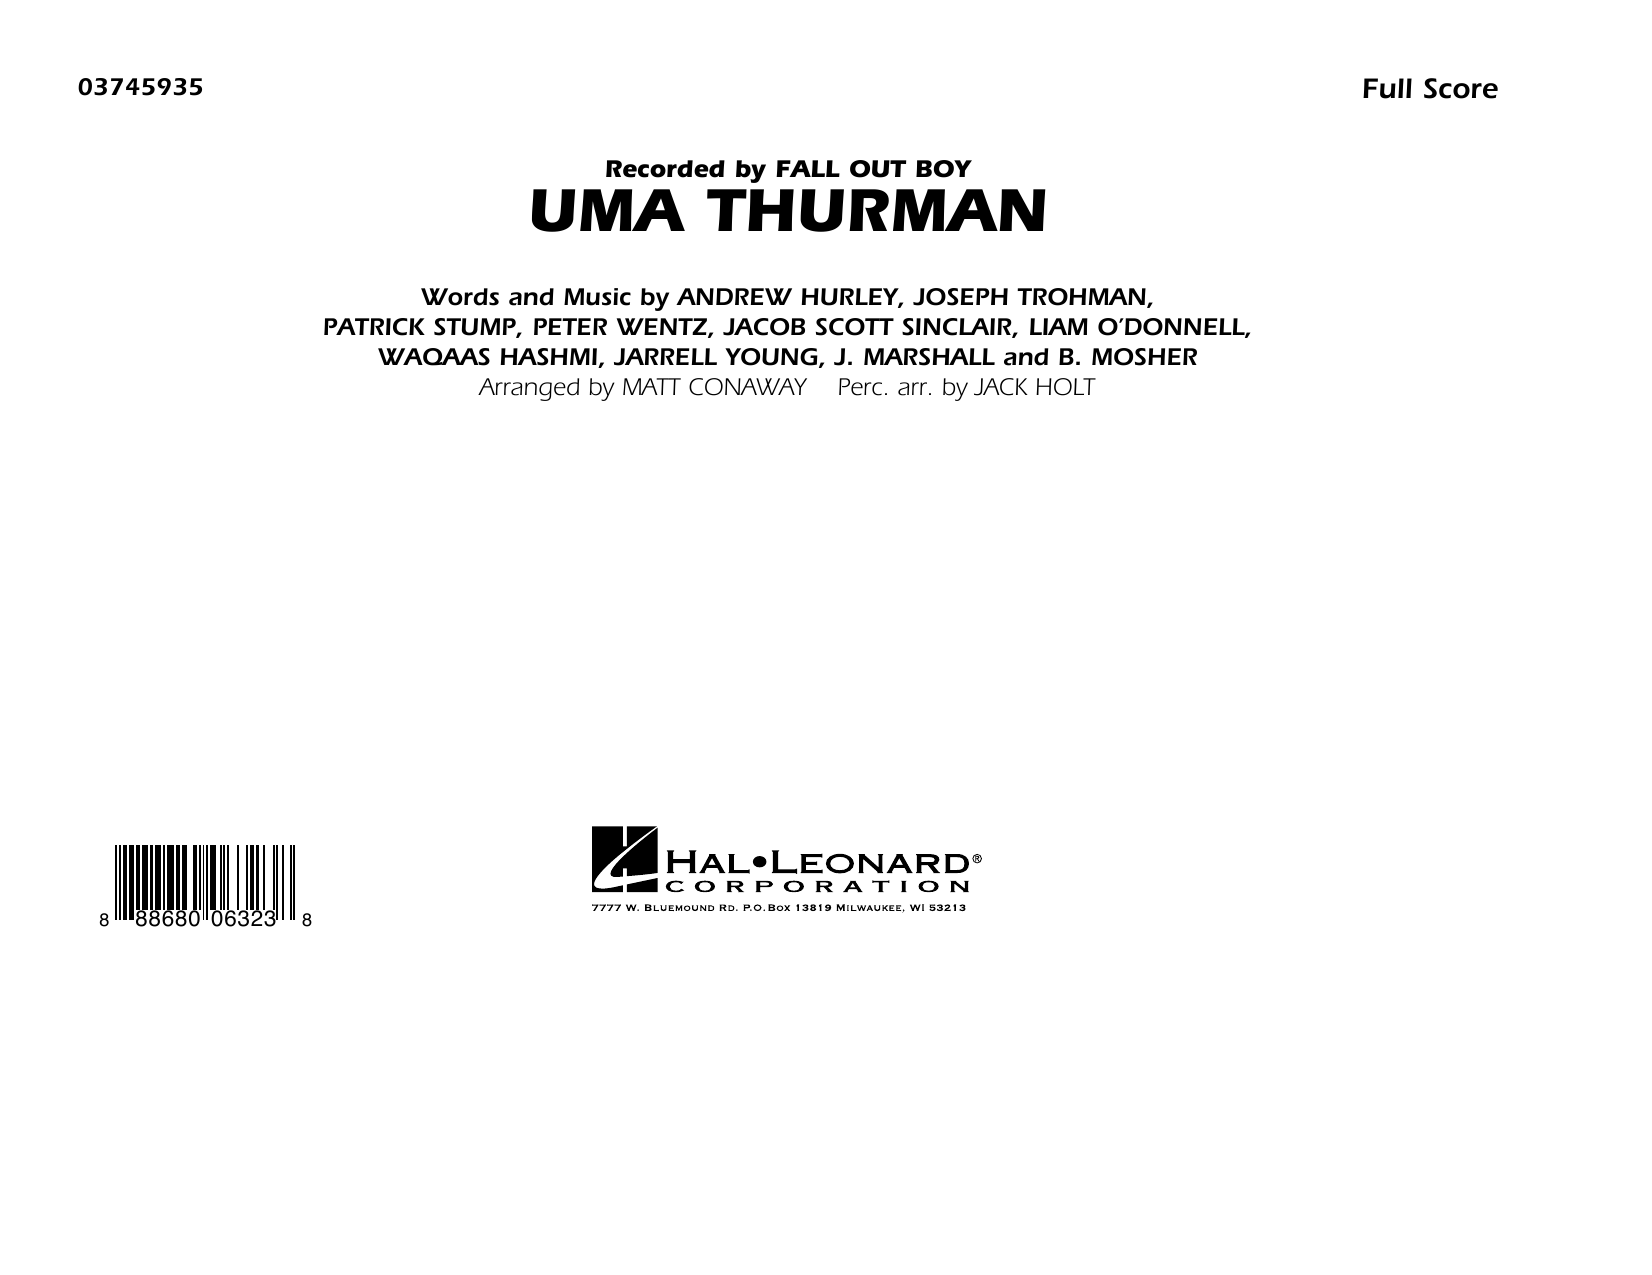 Uma Thurman (COMPLETE) sheet music for marching band by Matt Conaway